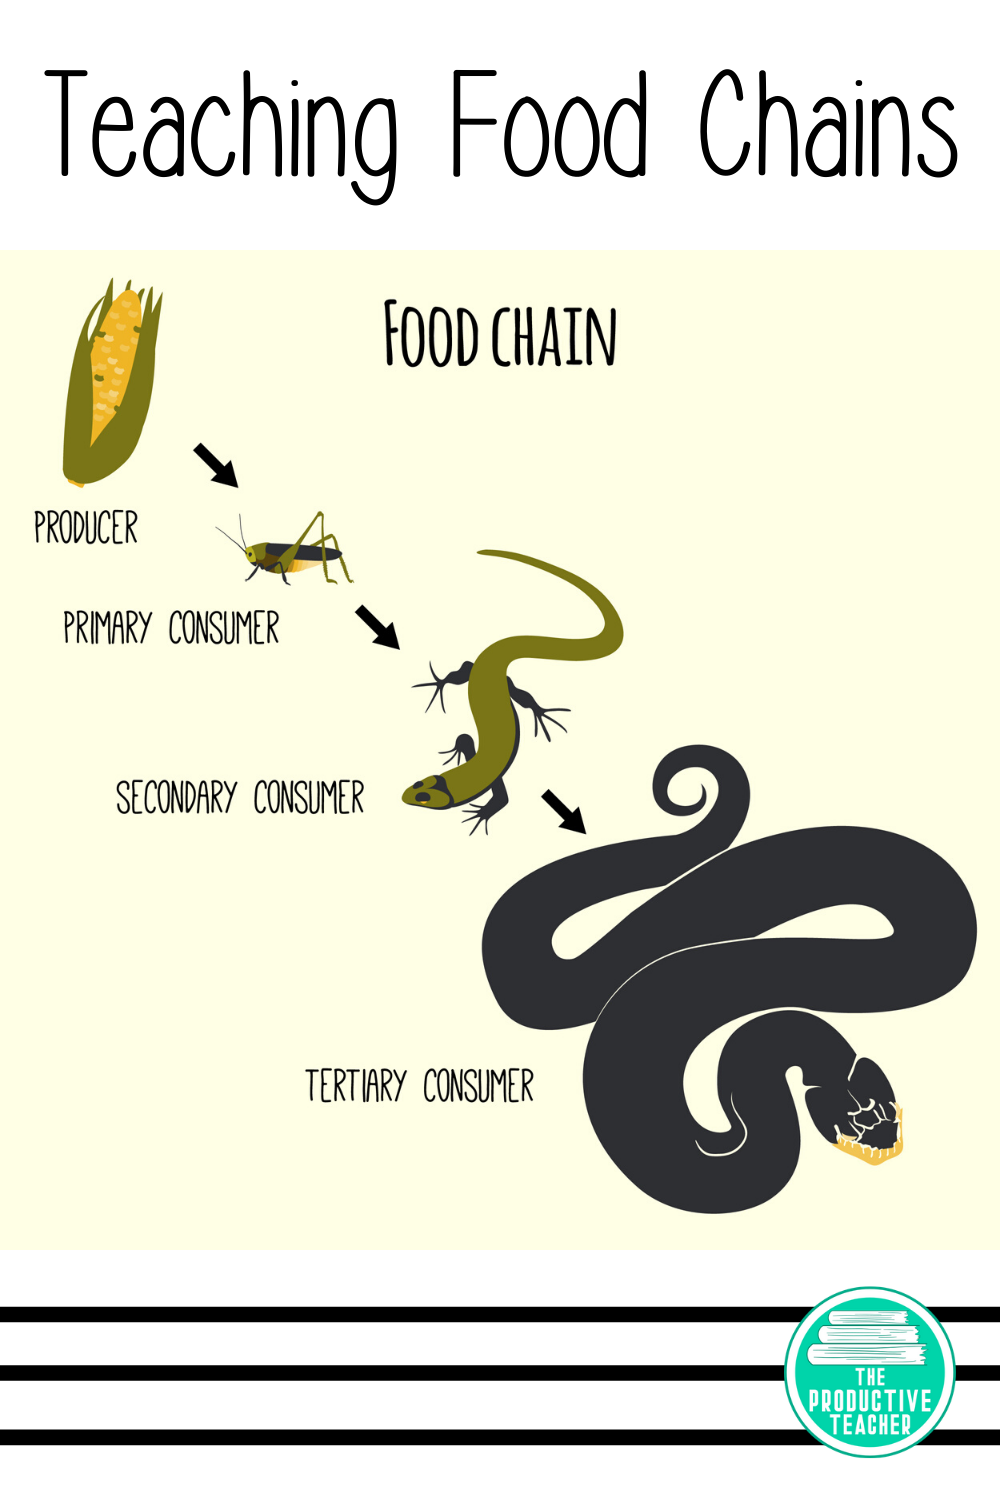 Food Chains Food Webs And Energy Pyramids Reading Passage Food Chain Science Reading Passages Reading Passages [ 1500 x 1000 Pixel ]